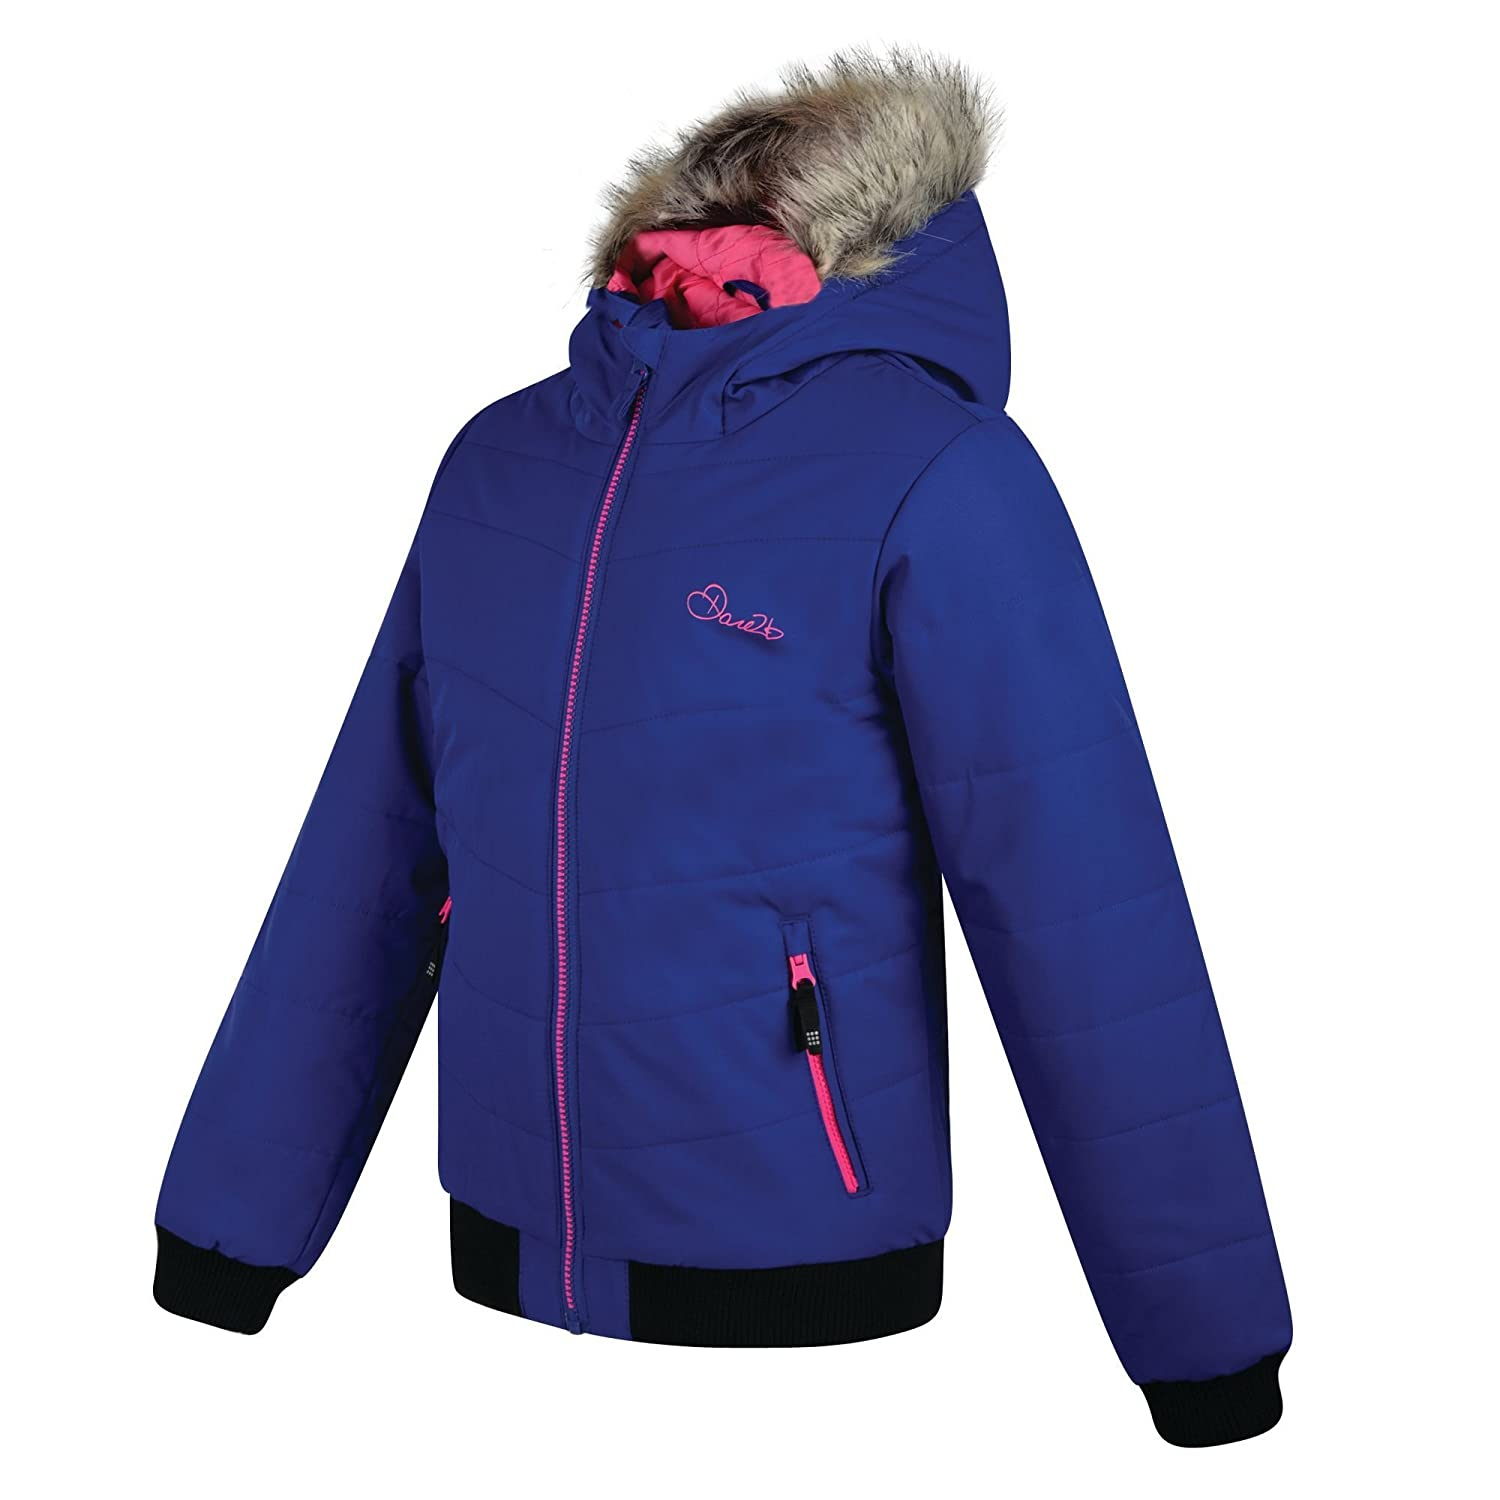 Dare2b Emulate Girls Ared 5000 Fabric Padded Insulated Jacket